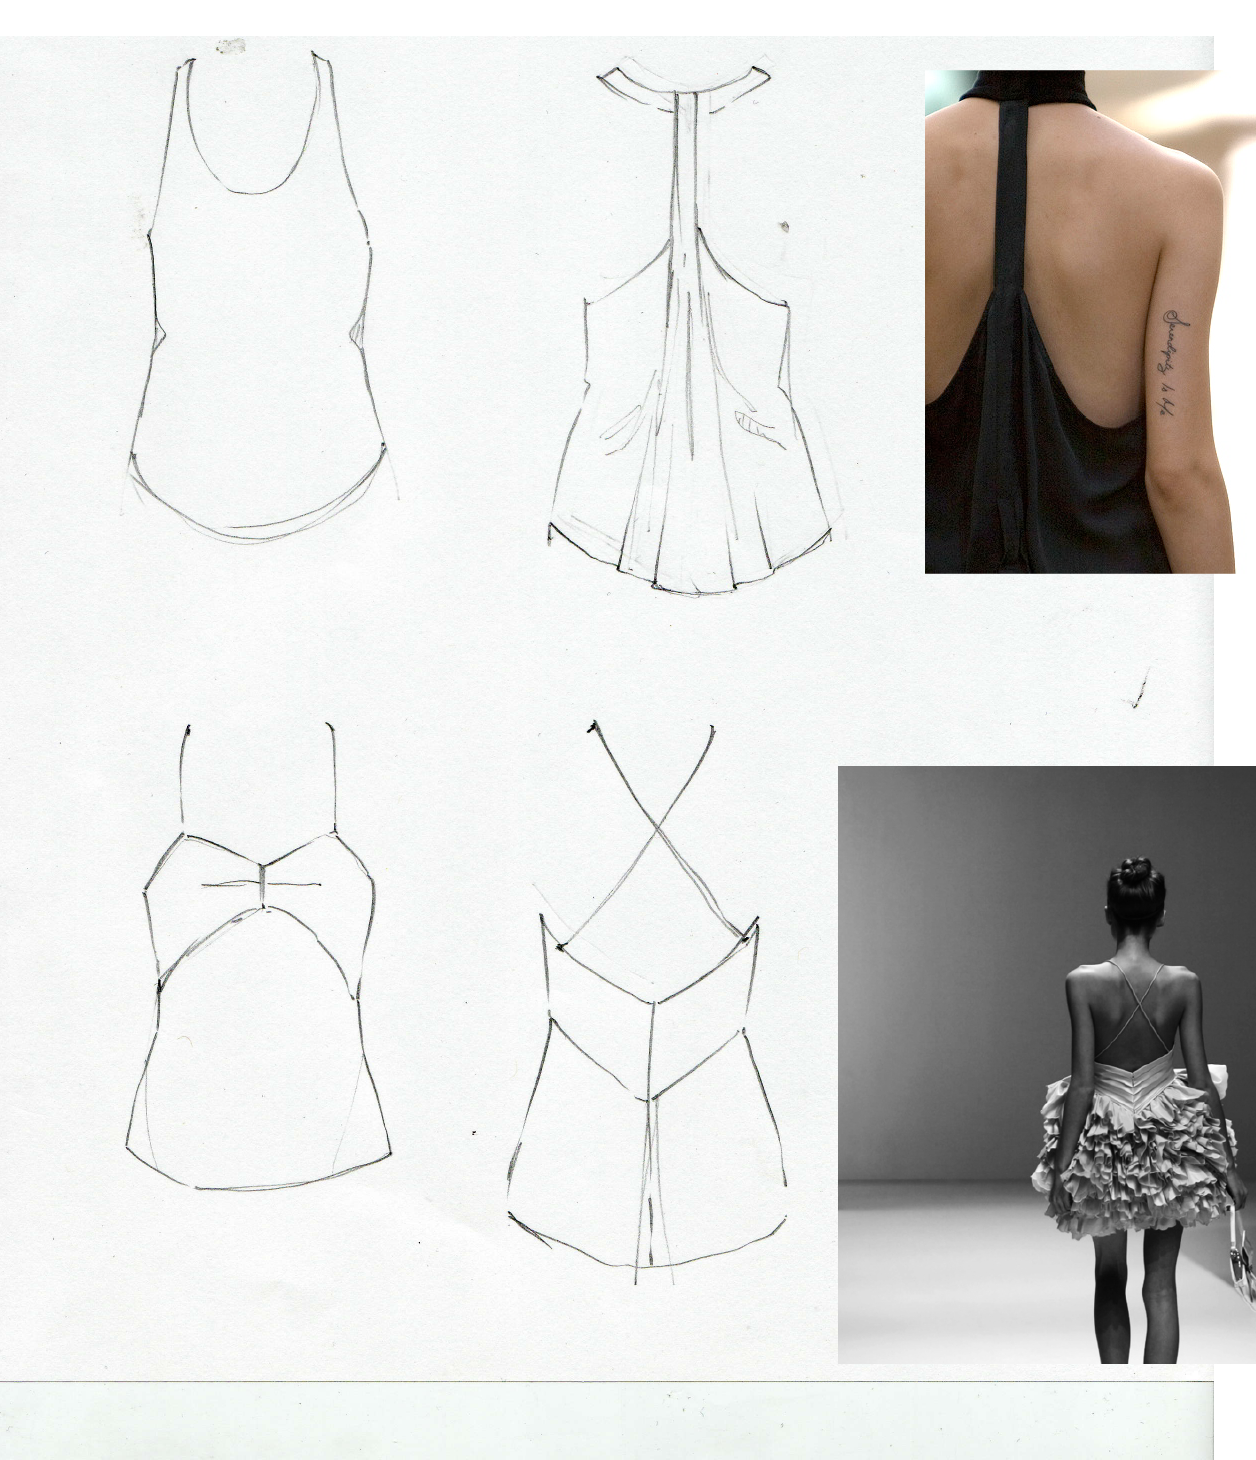 kate lab project_sketches-06.png